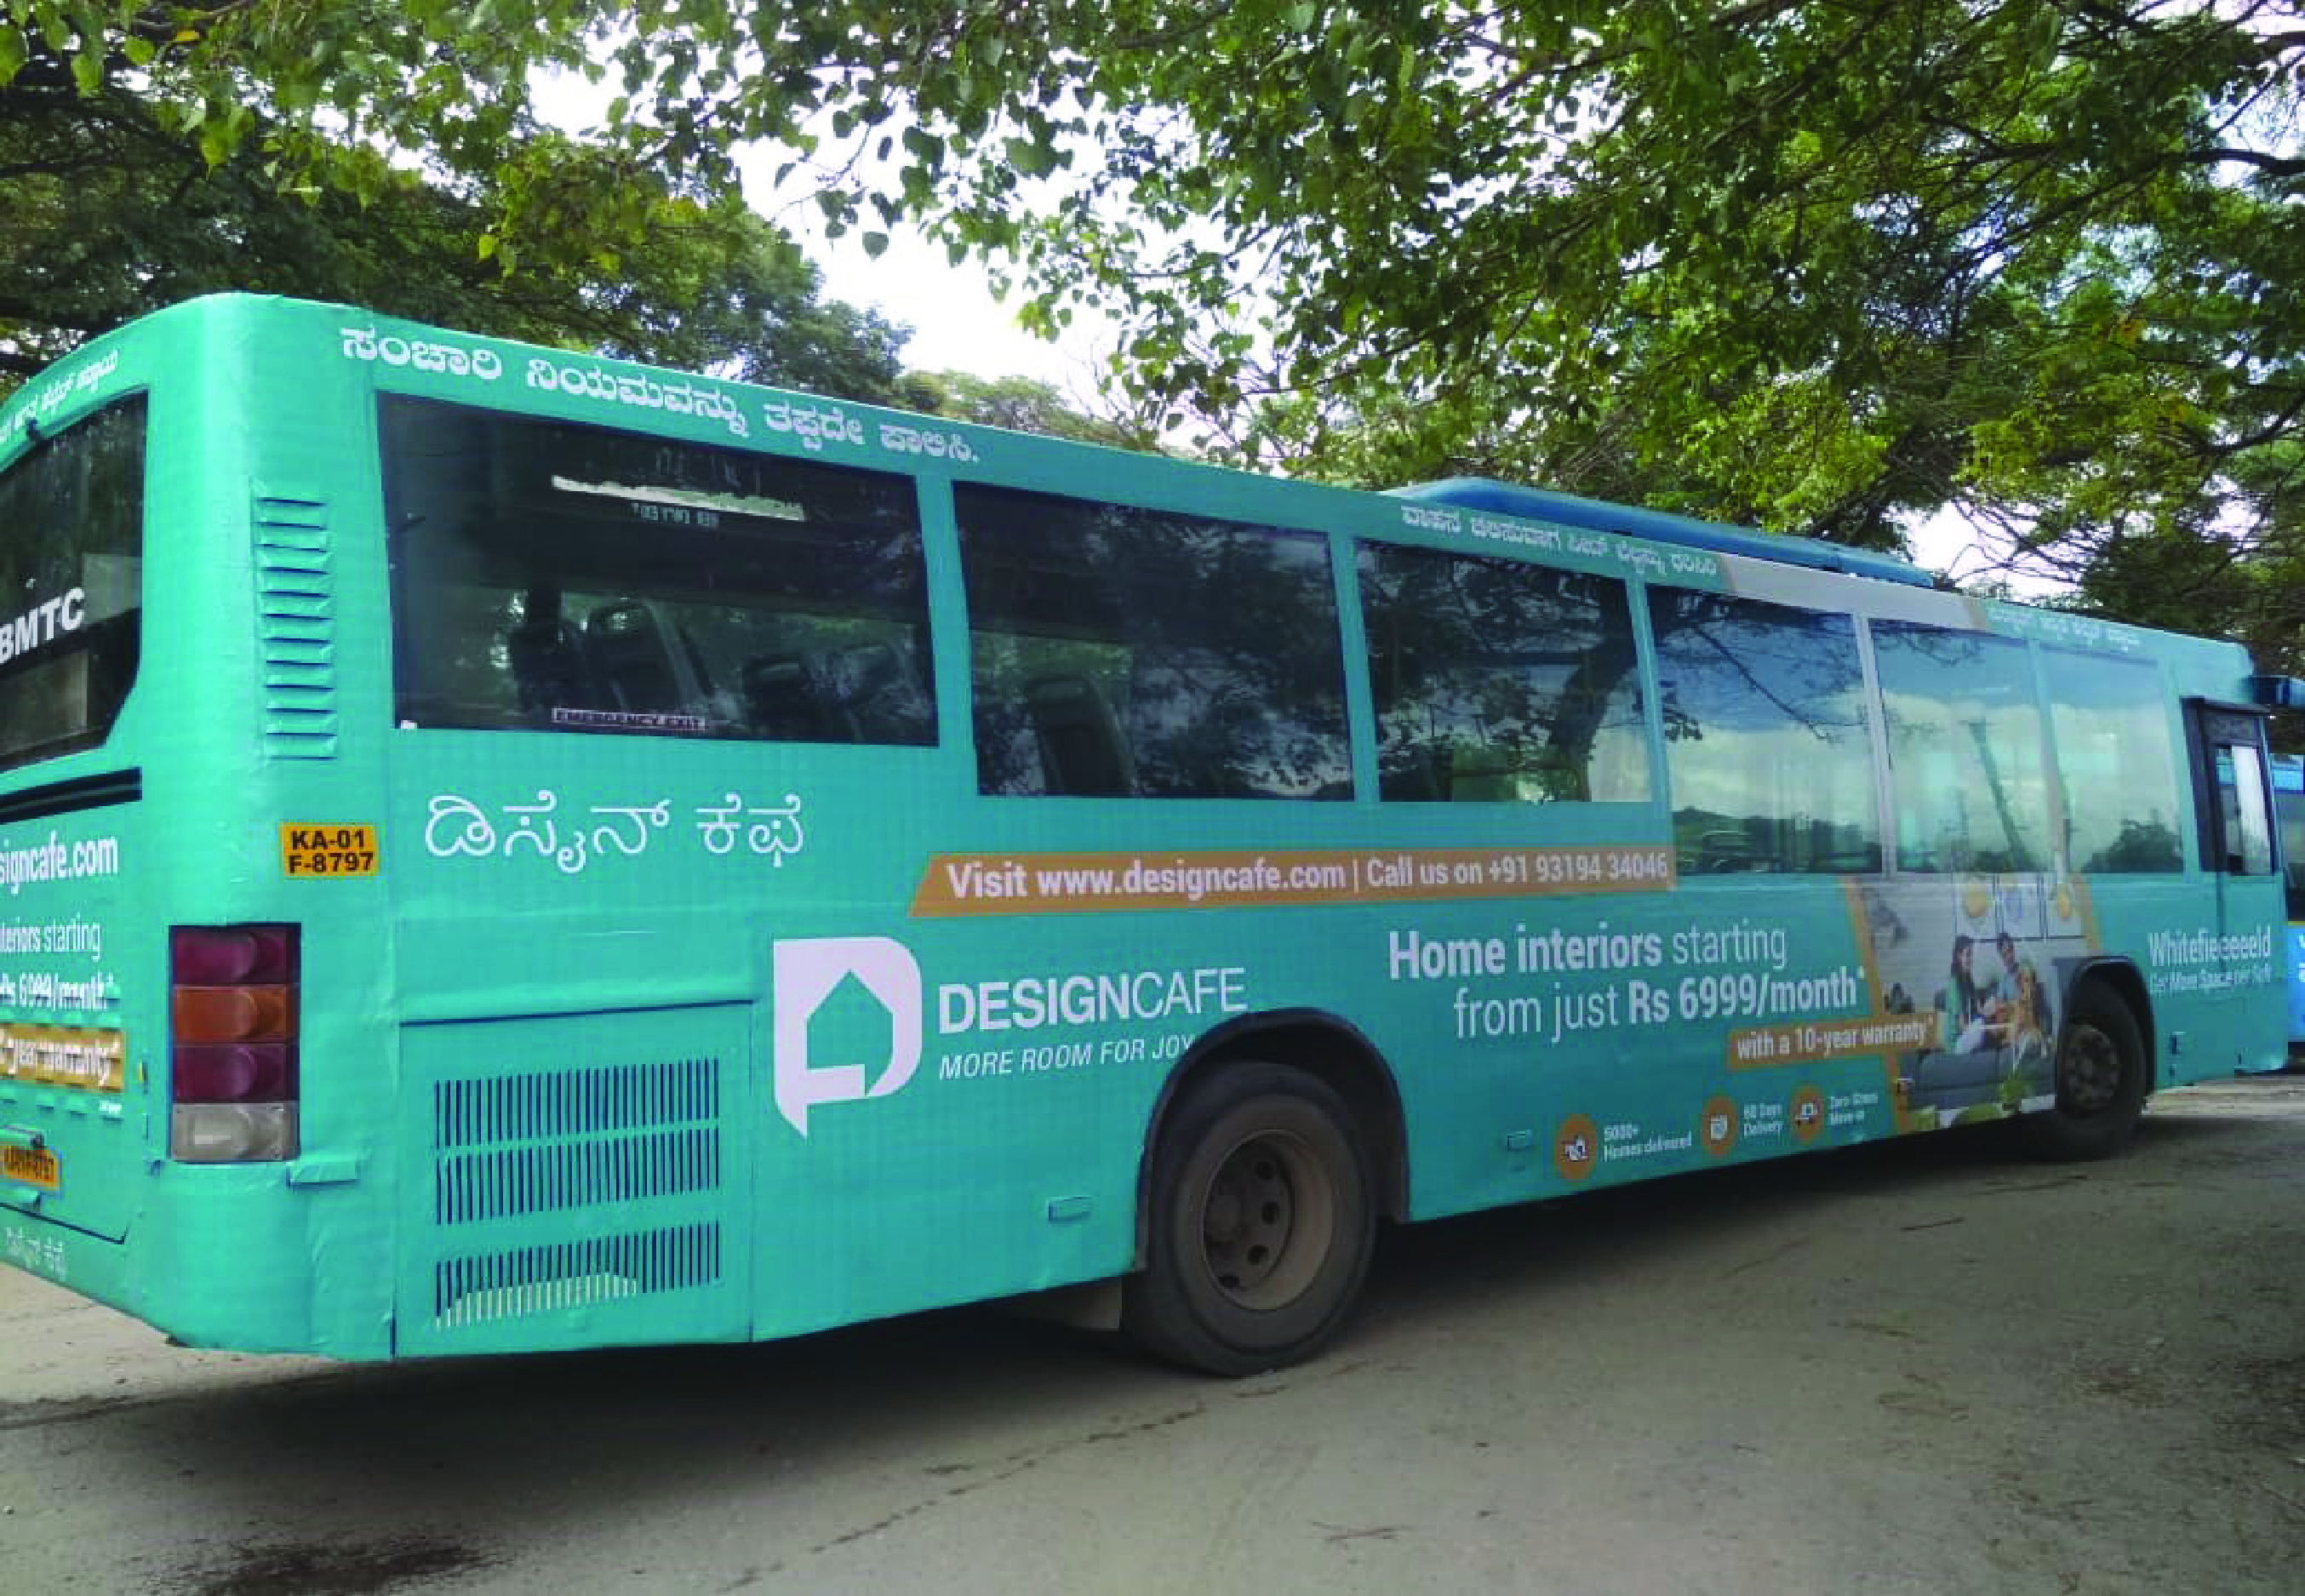 Design Cafe Bus Advertisement in Bangalore